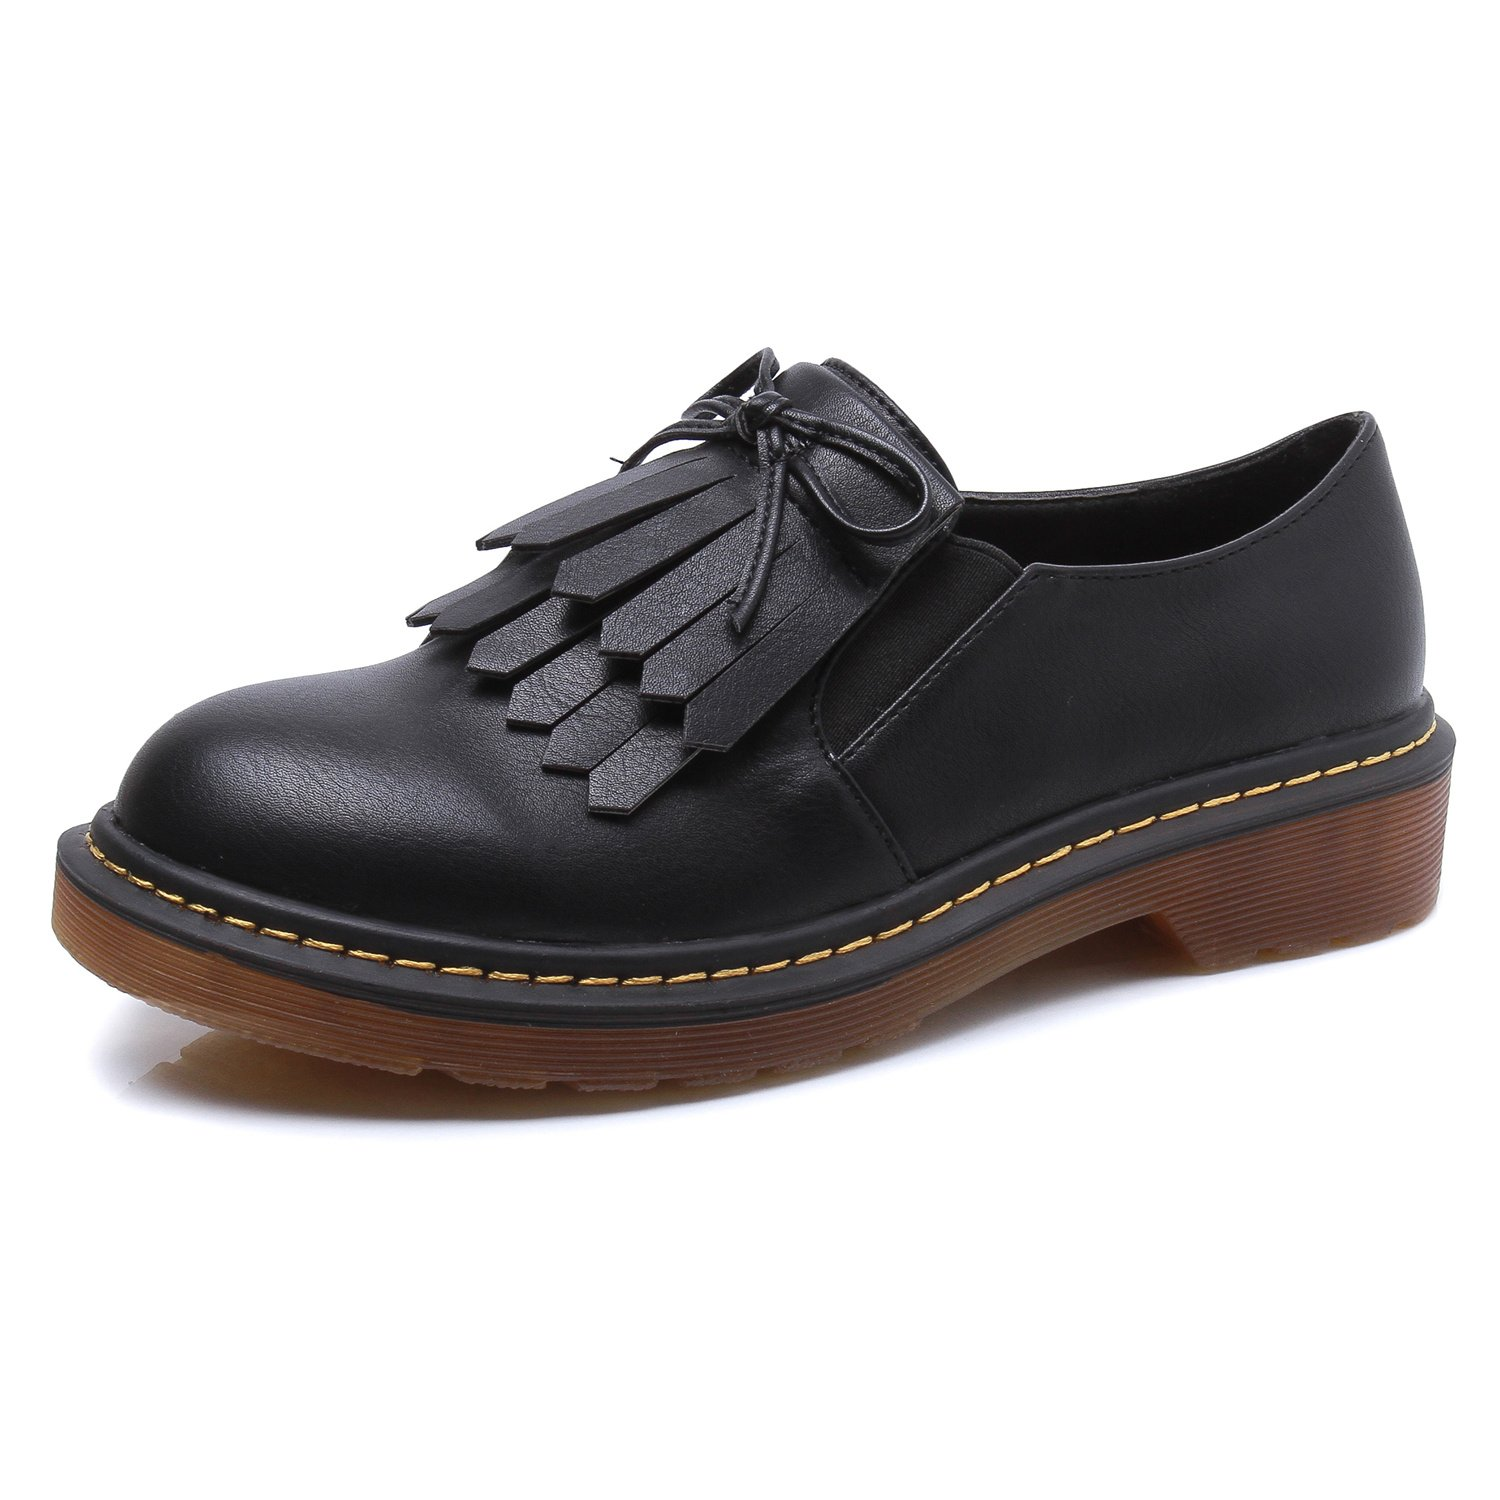 Smilun Lady¡¯s Western Low Heel Shoes Classic Tassel Flats Round Toe B01M1BSP0G 6 B(M) US|Black